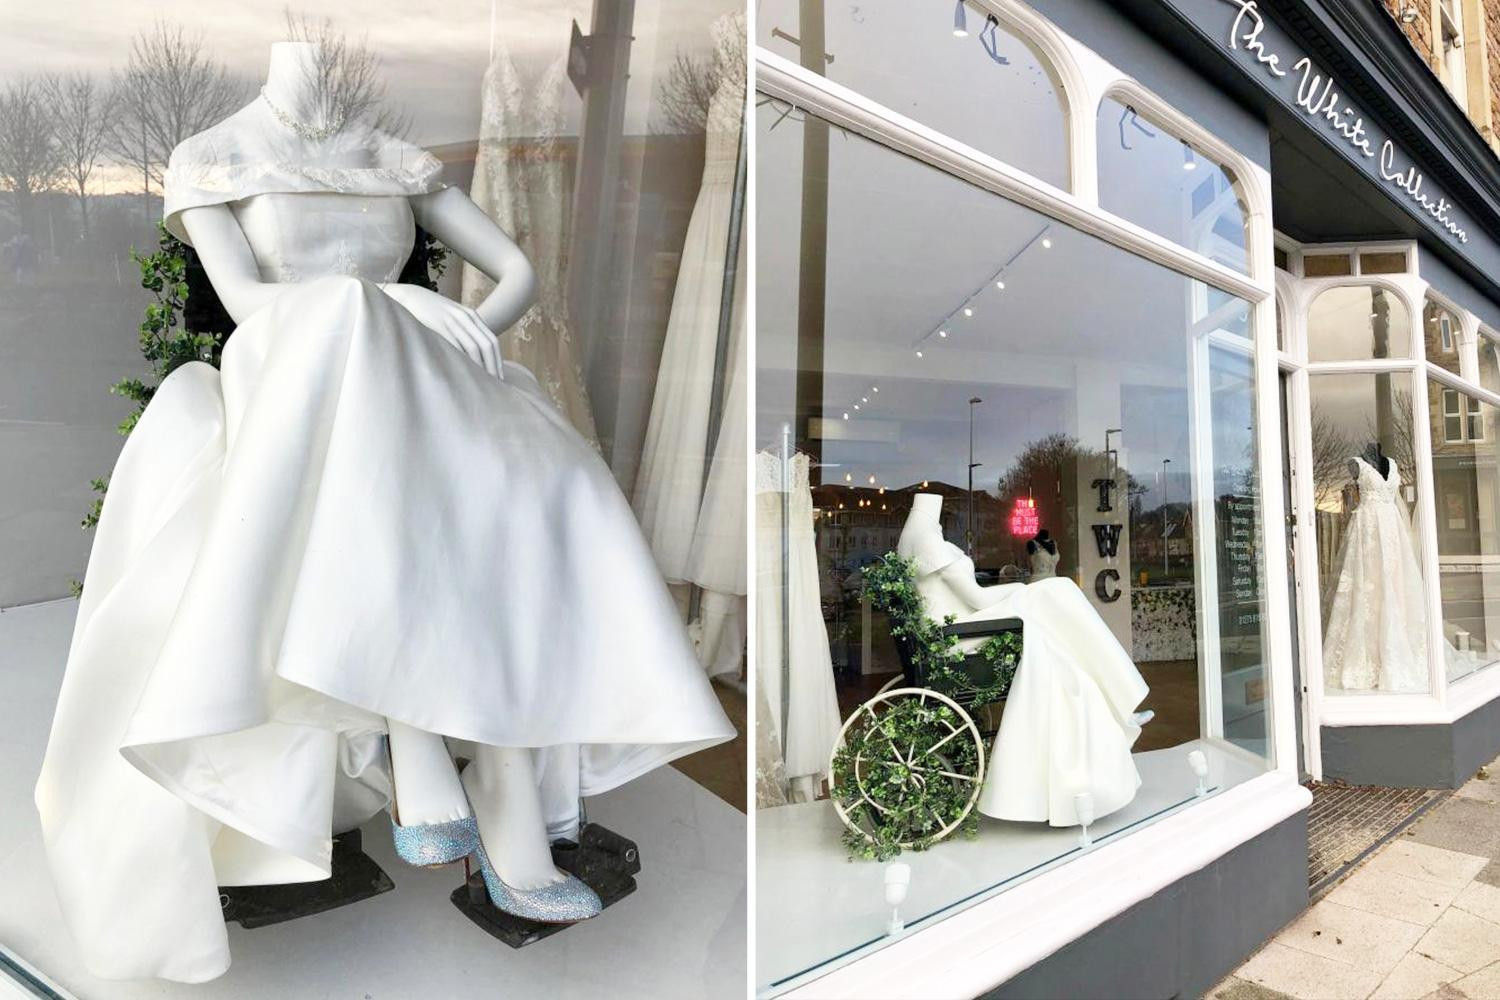 Bridal shop is praised and brings passers-by to tears as it breaks the mould with a mannequin in a wheelchair in its window display